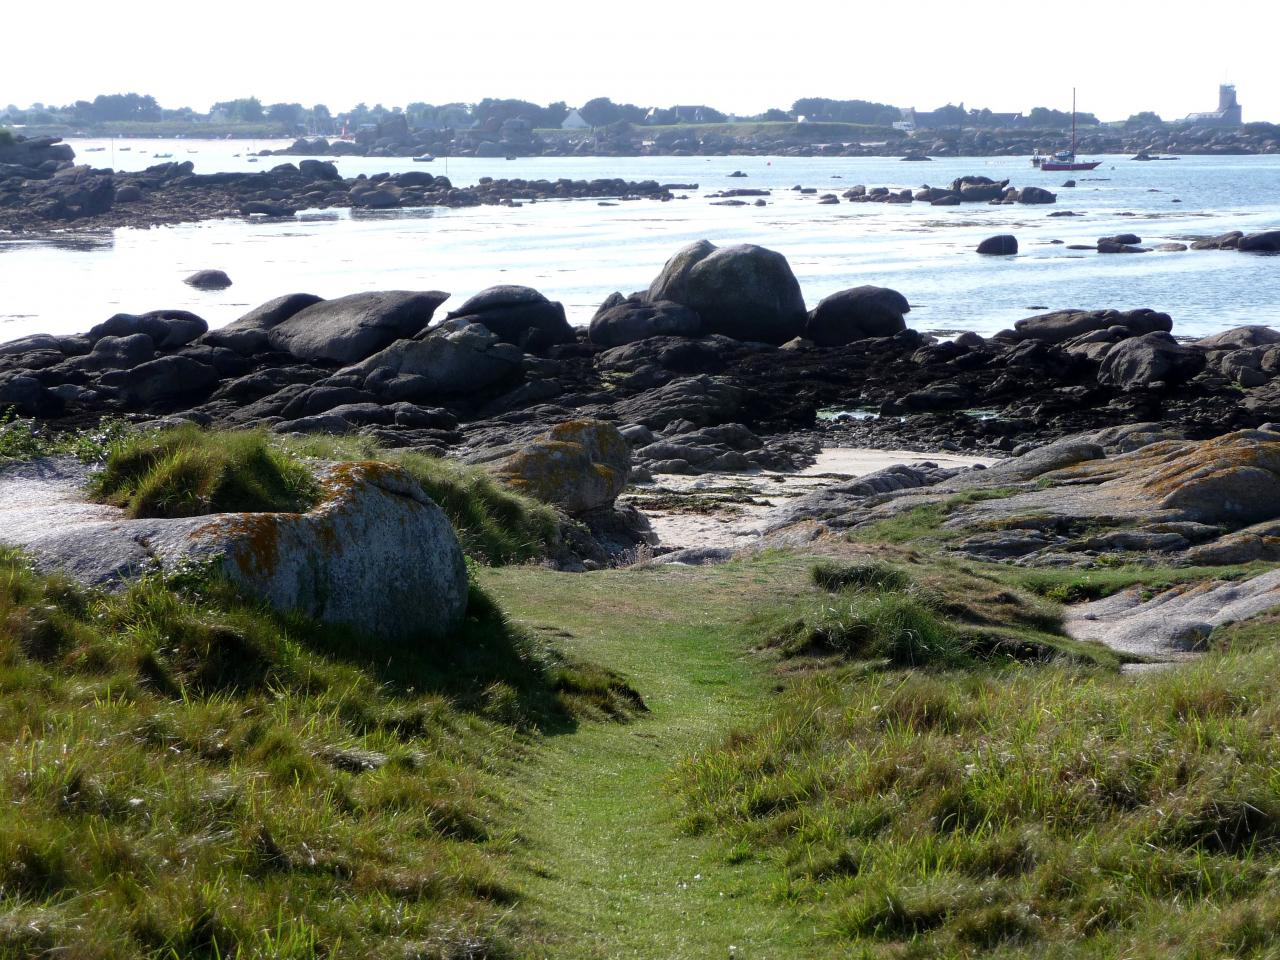 Brignogan Beaches